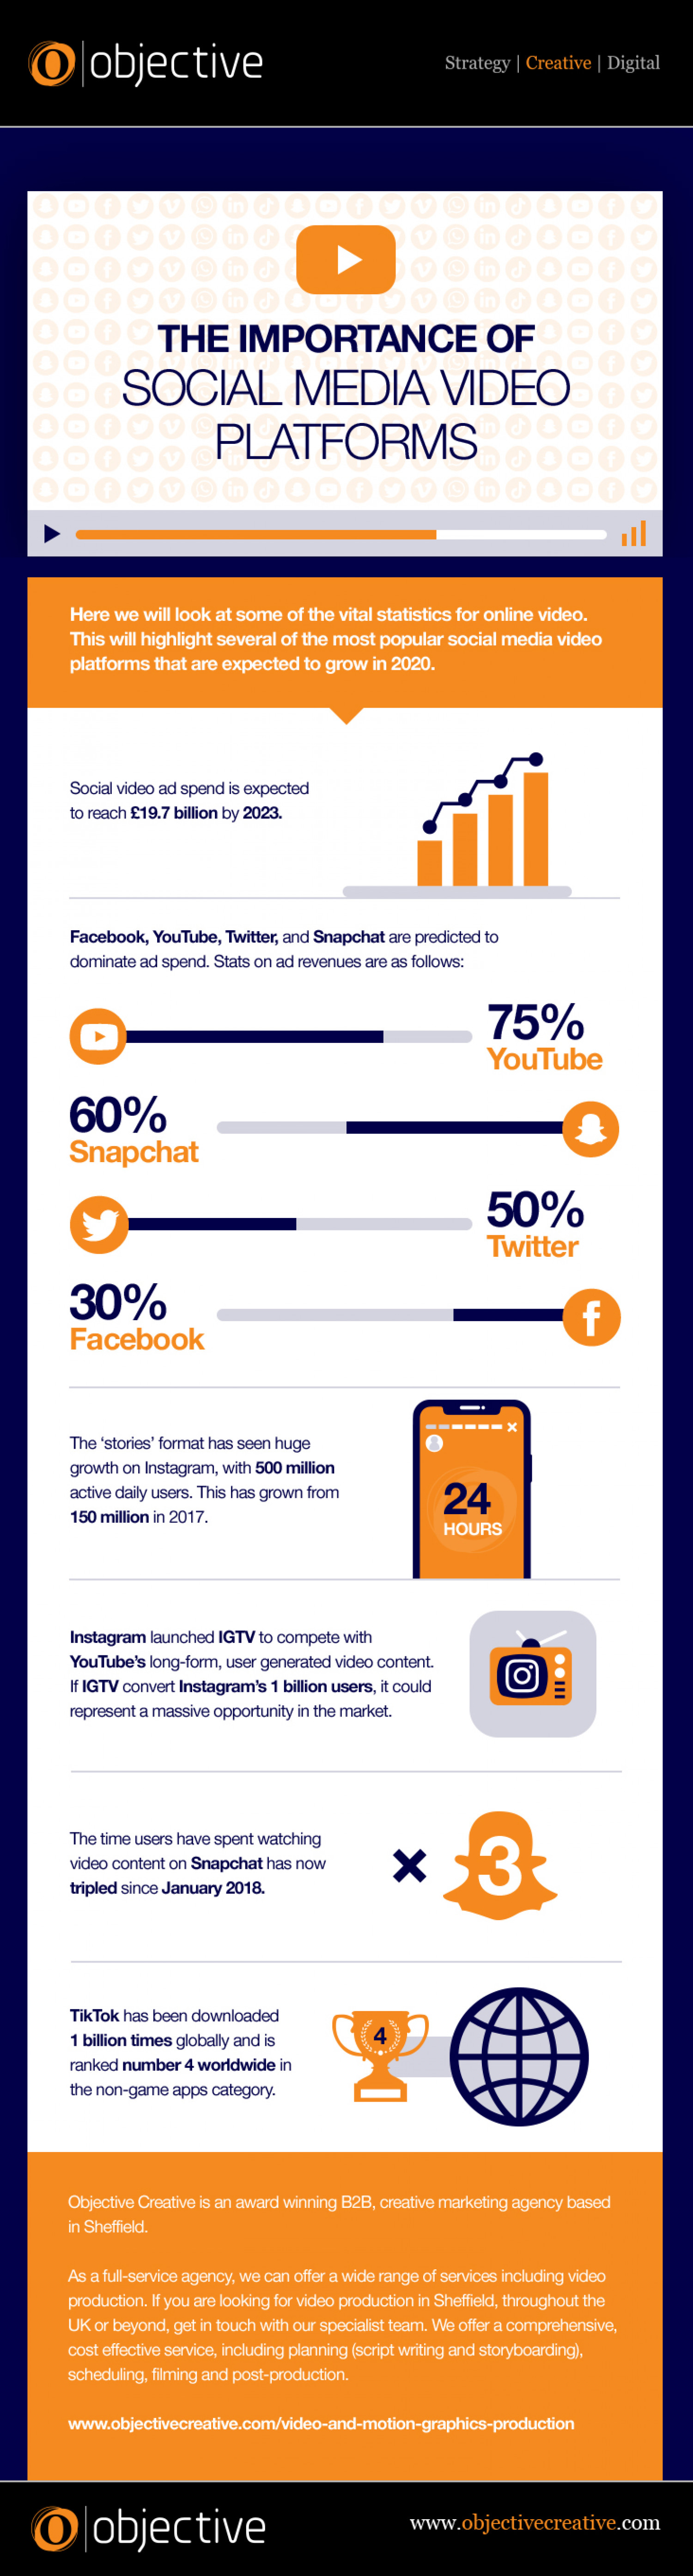 The Importance of Social Media Video Platforms Infographic